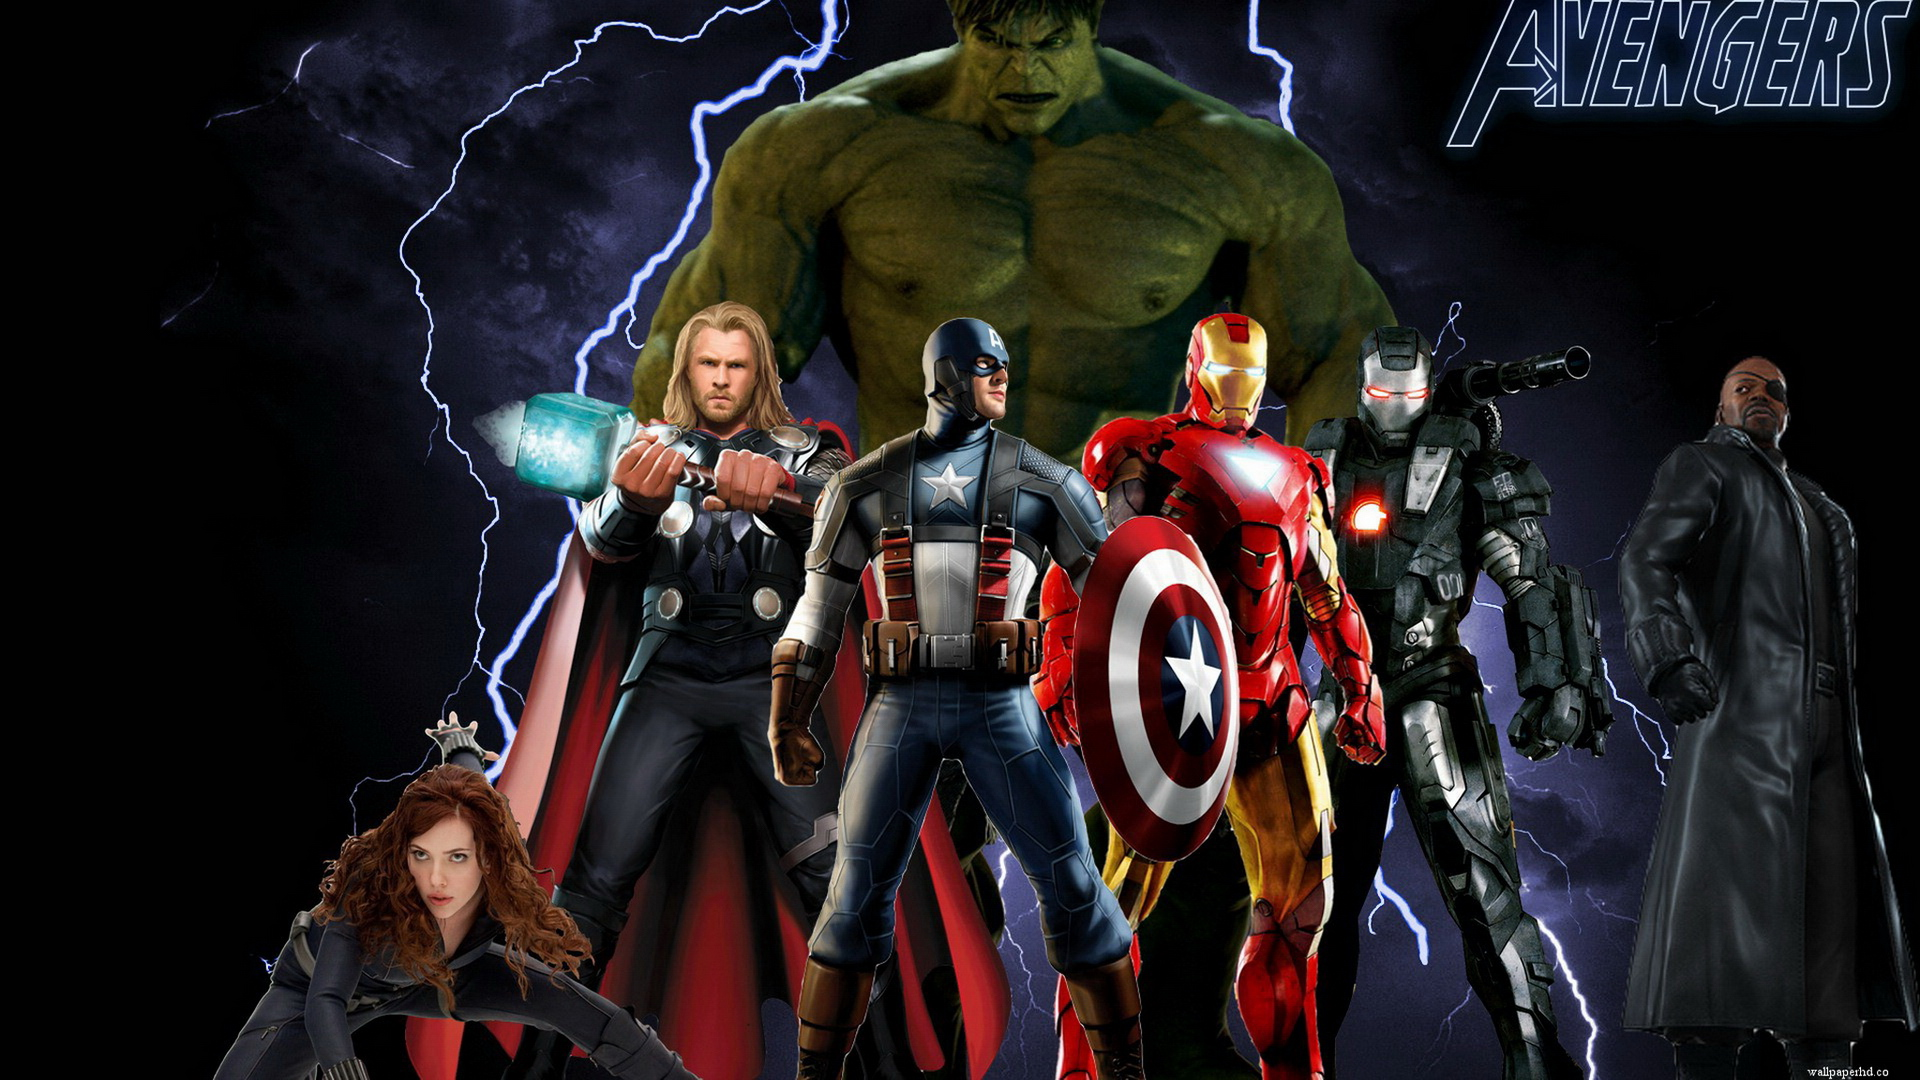 Hero Avengers Movie Wallpaper